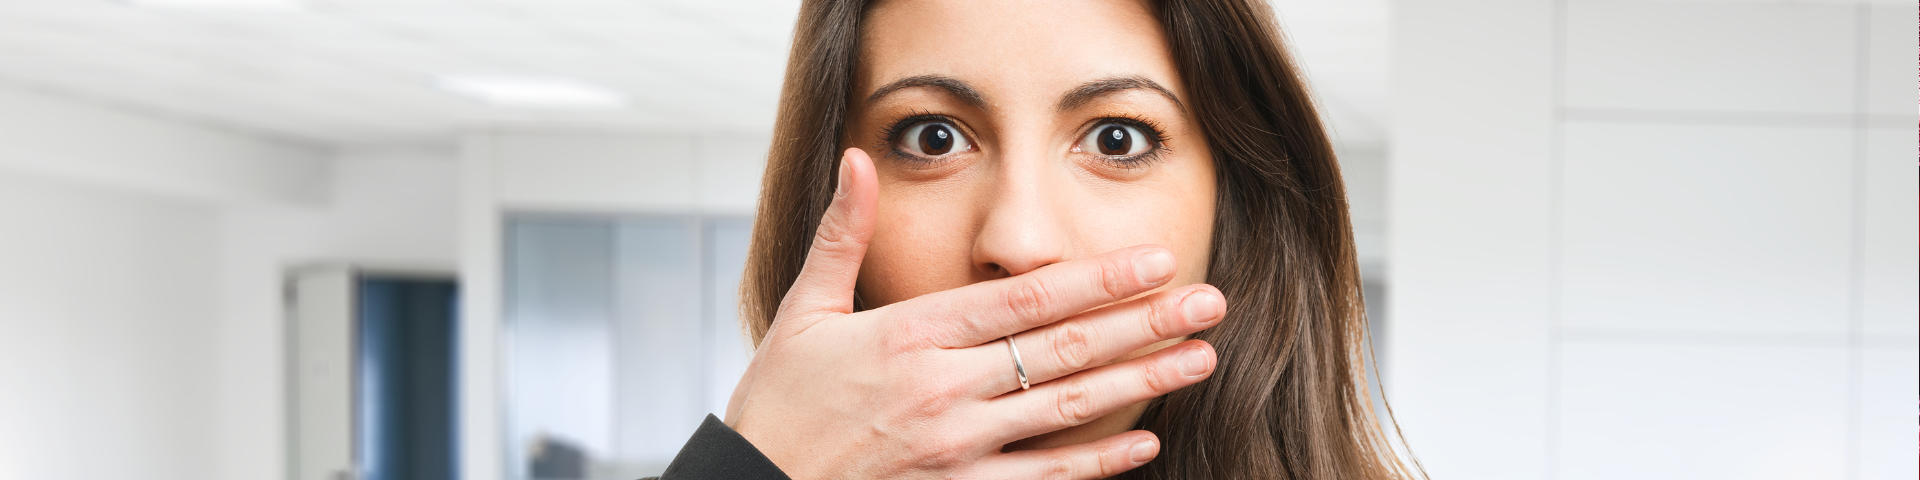 Young confused woman covering her mouth due to bad breath.